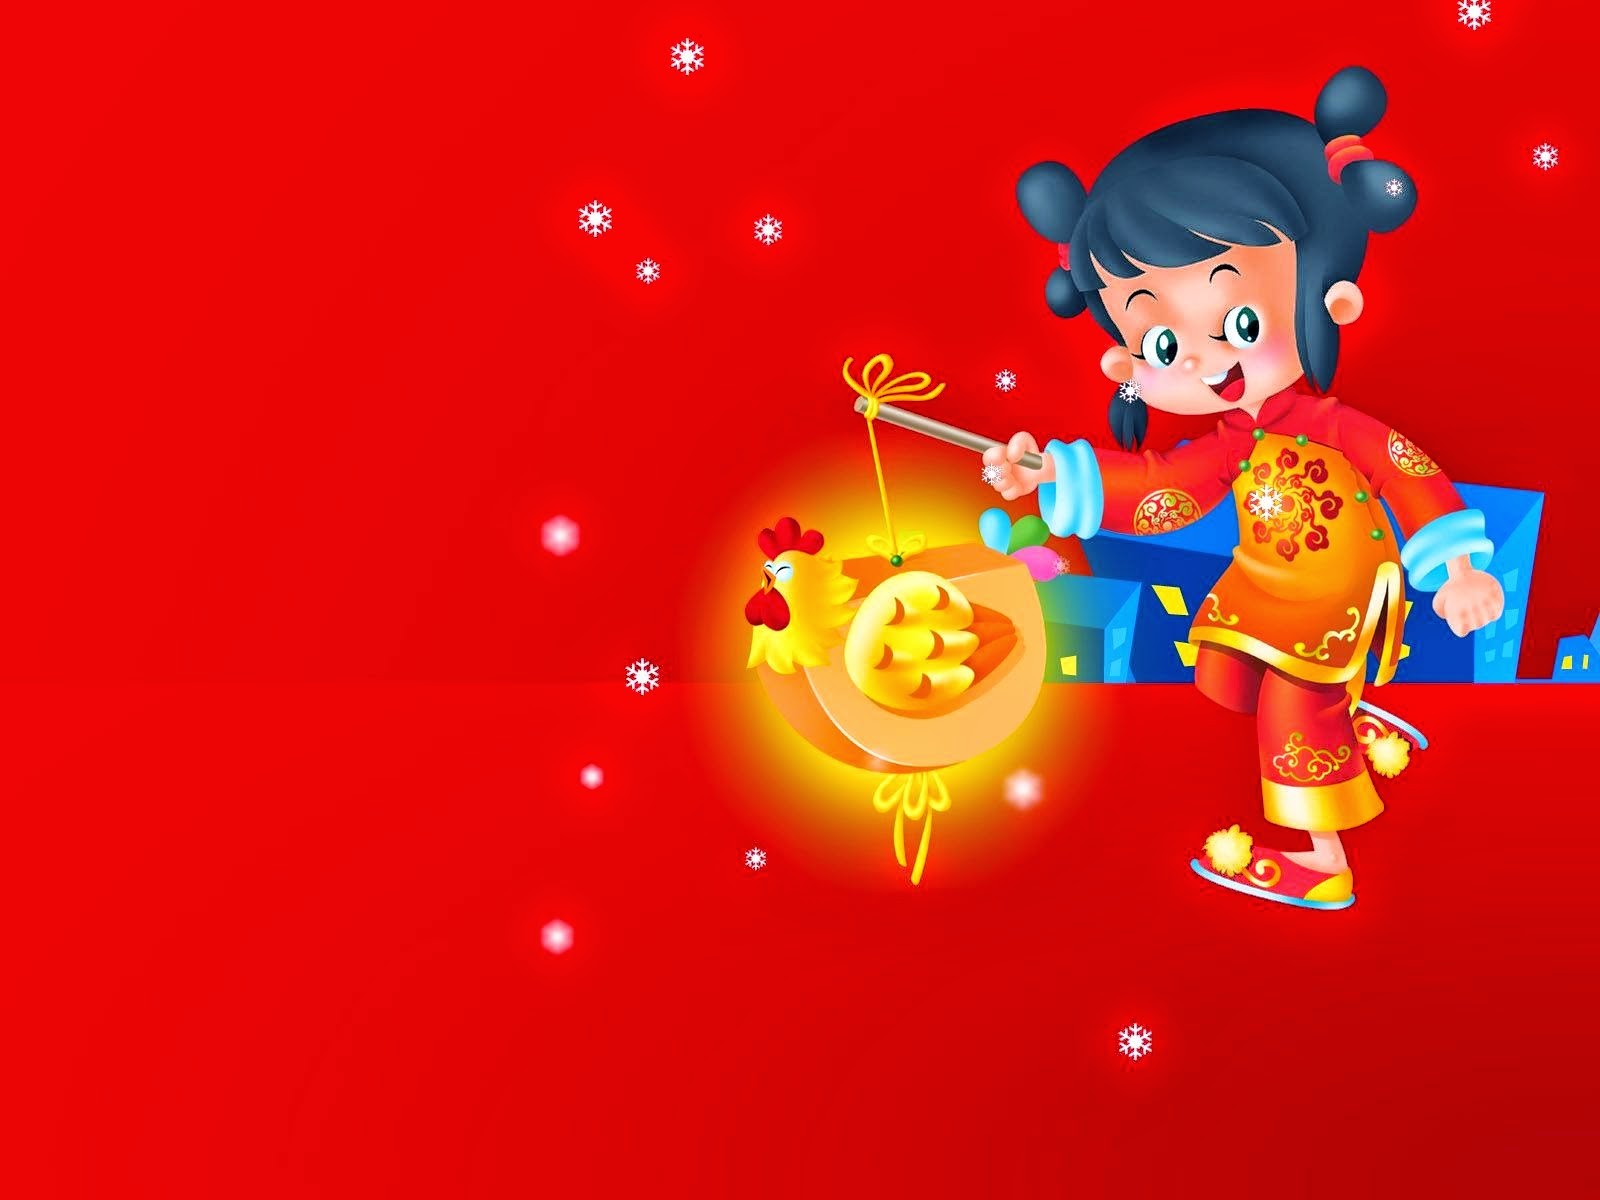 Chinese New Year 2019 Celebration in Singapore Wallpapers